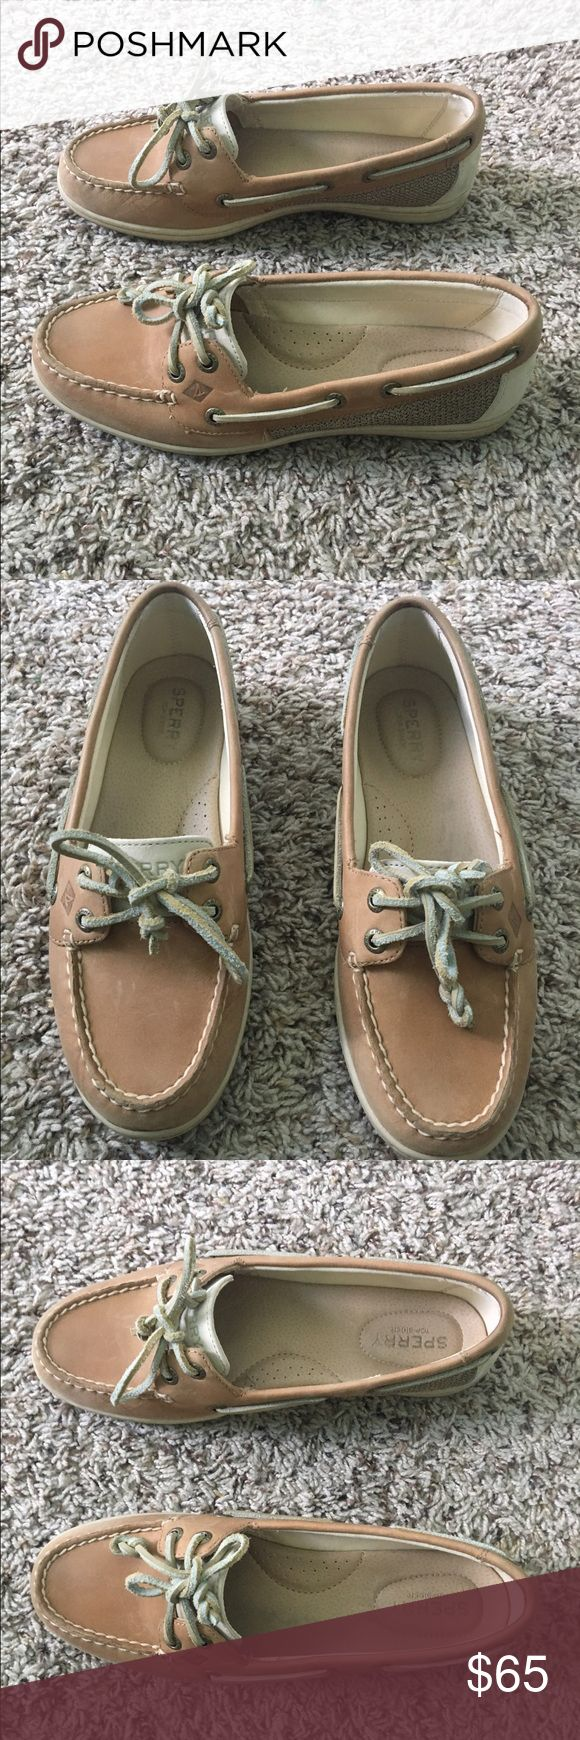 Sperry's Women's boat shoes size 7.5 Sperry's Women's boat shoes that are practically new! Worn 3 times with no scratches. Size 7.5. New with box. Sperry Shoes Flats & Loafers